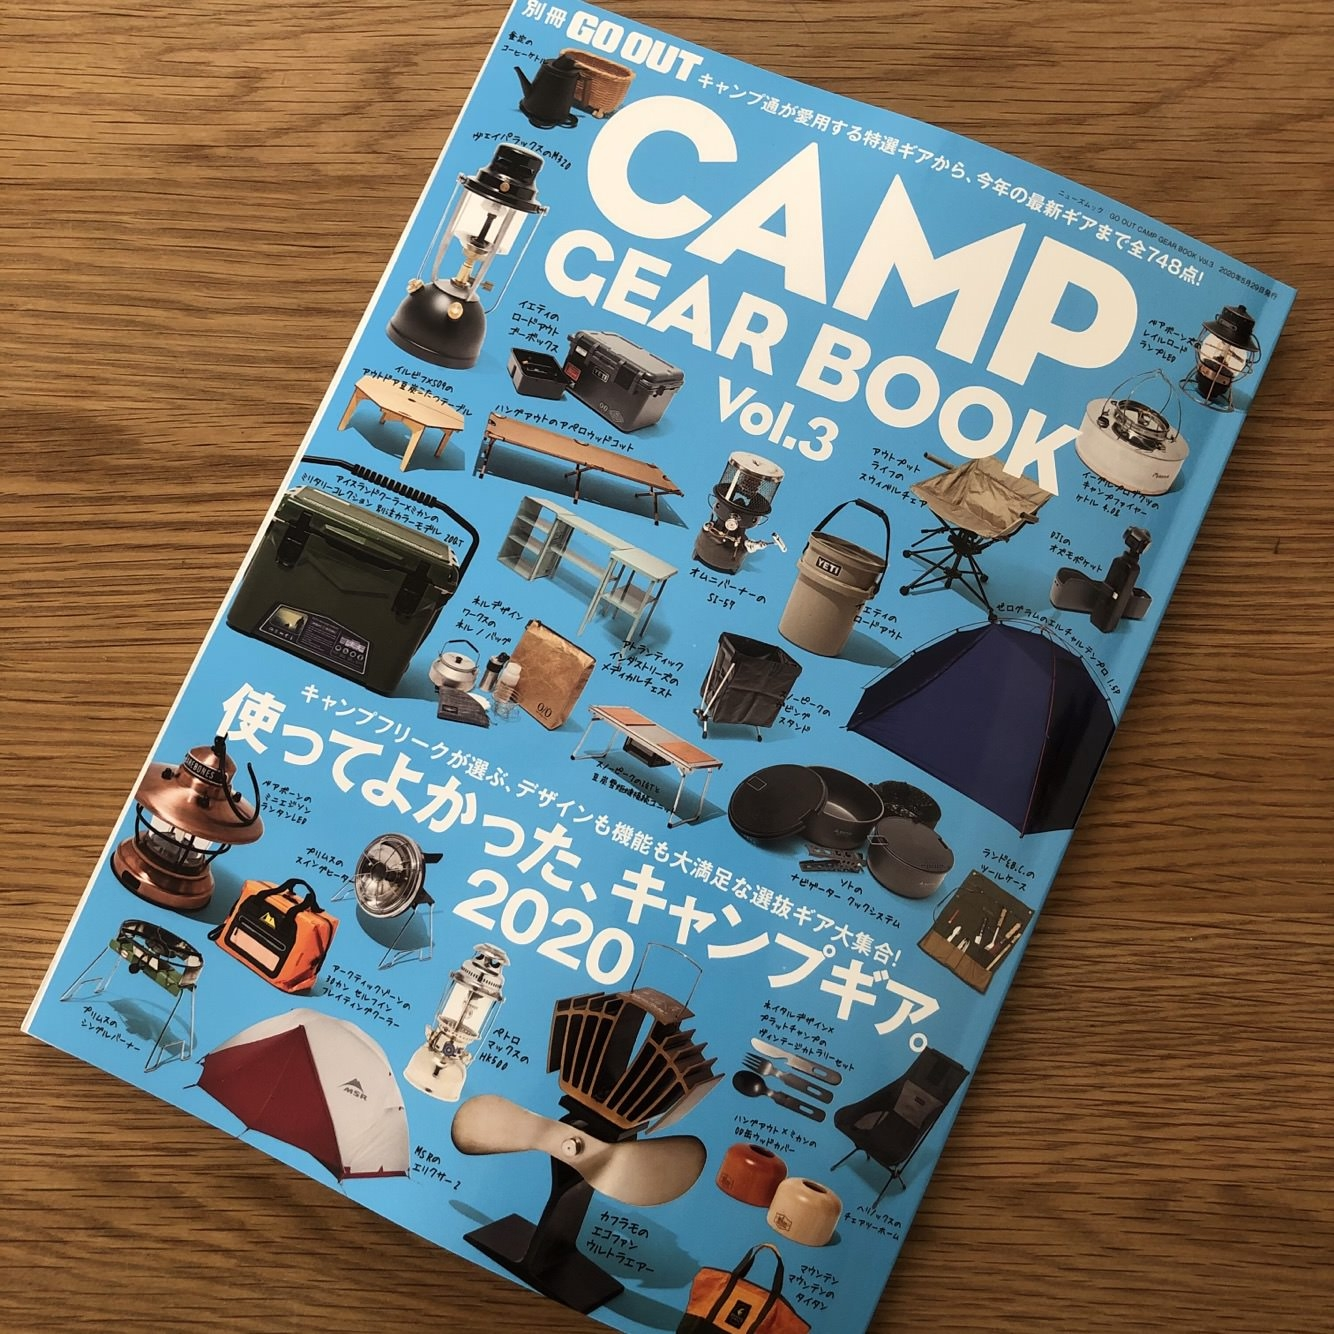 【雑誌掲載情報】GO OUT別冊『CAMP GEAR BOOK vol.3』